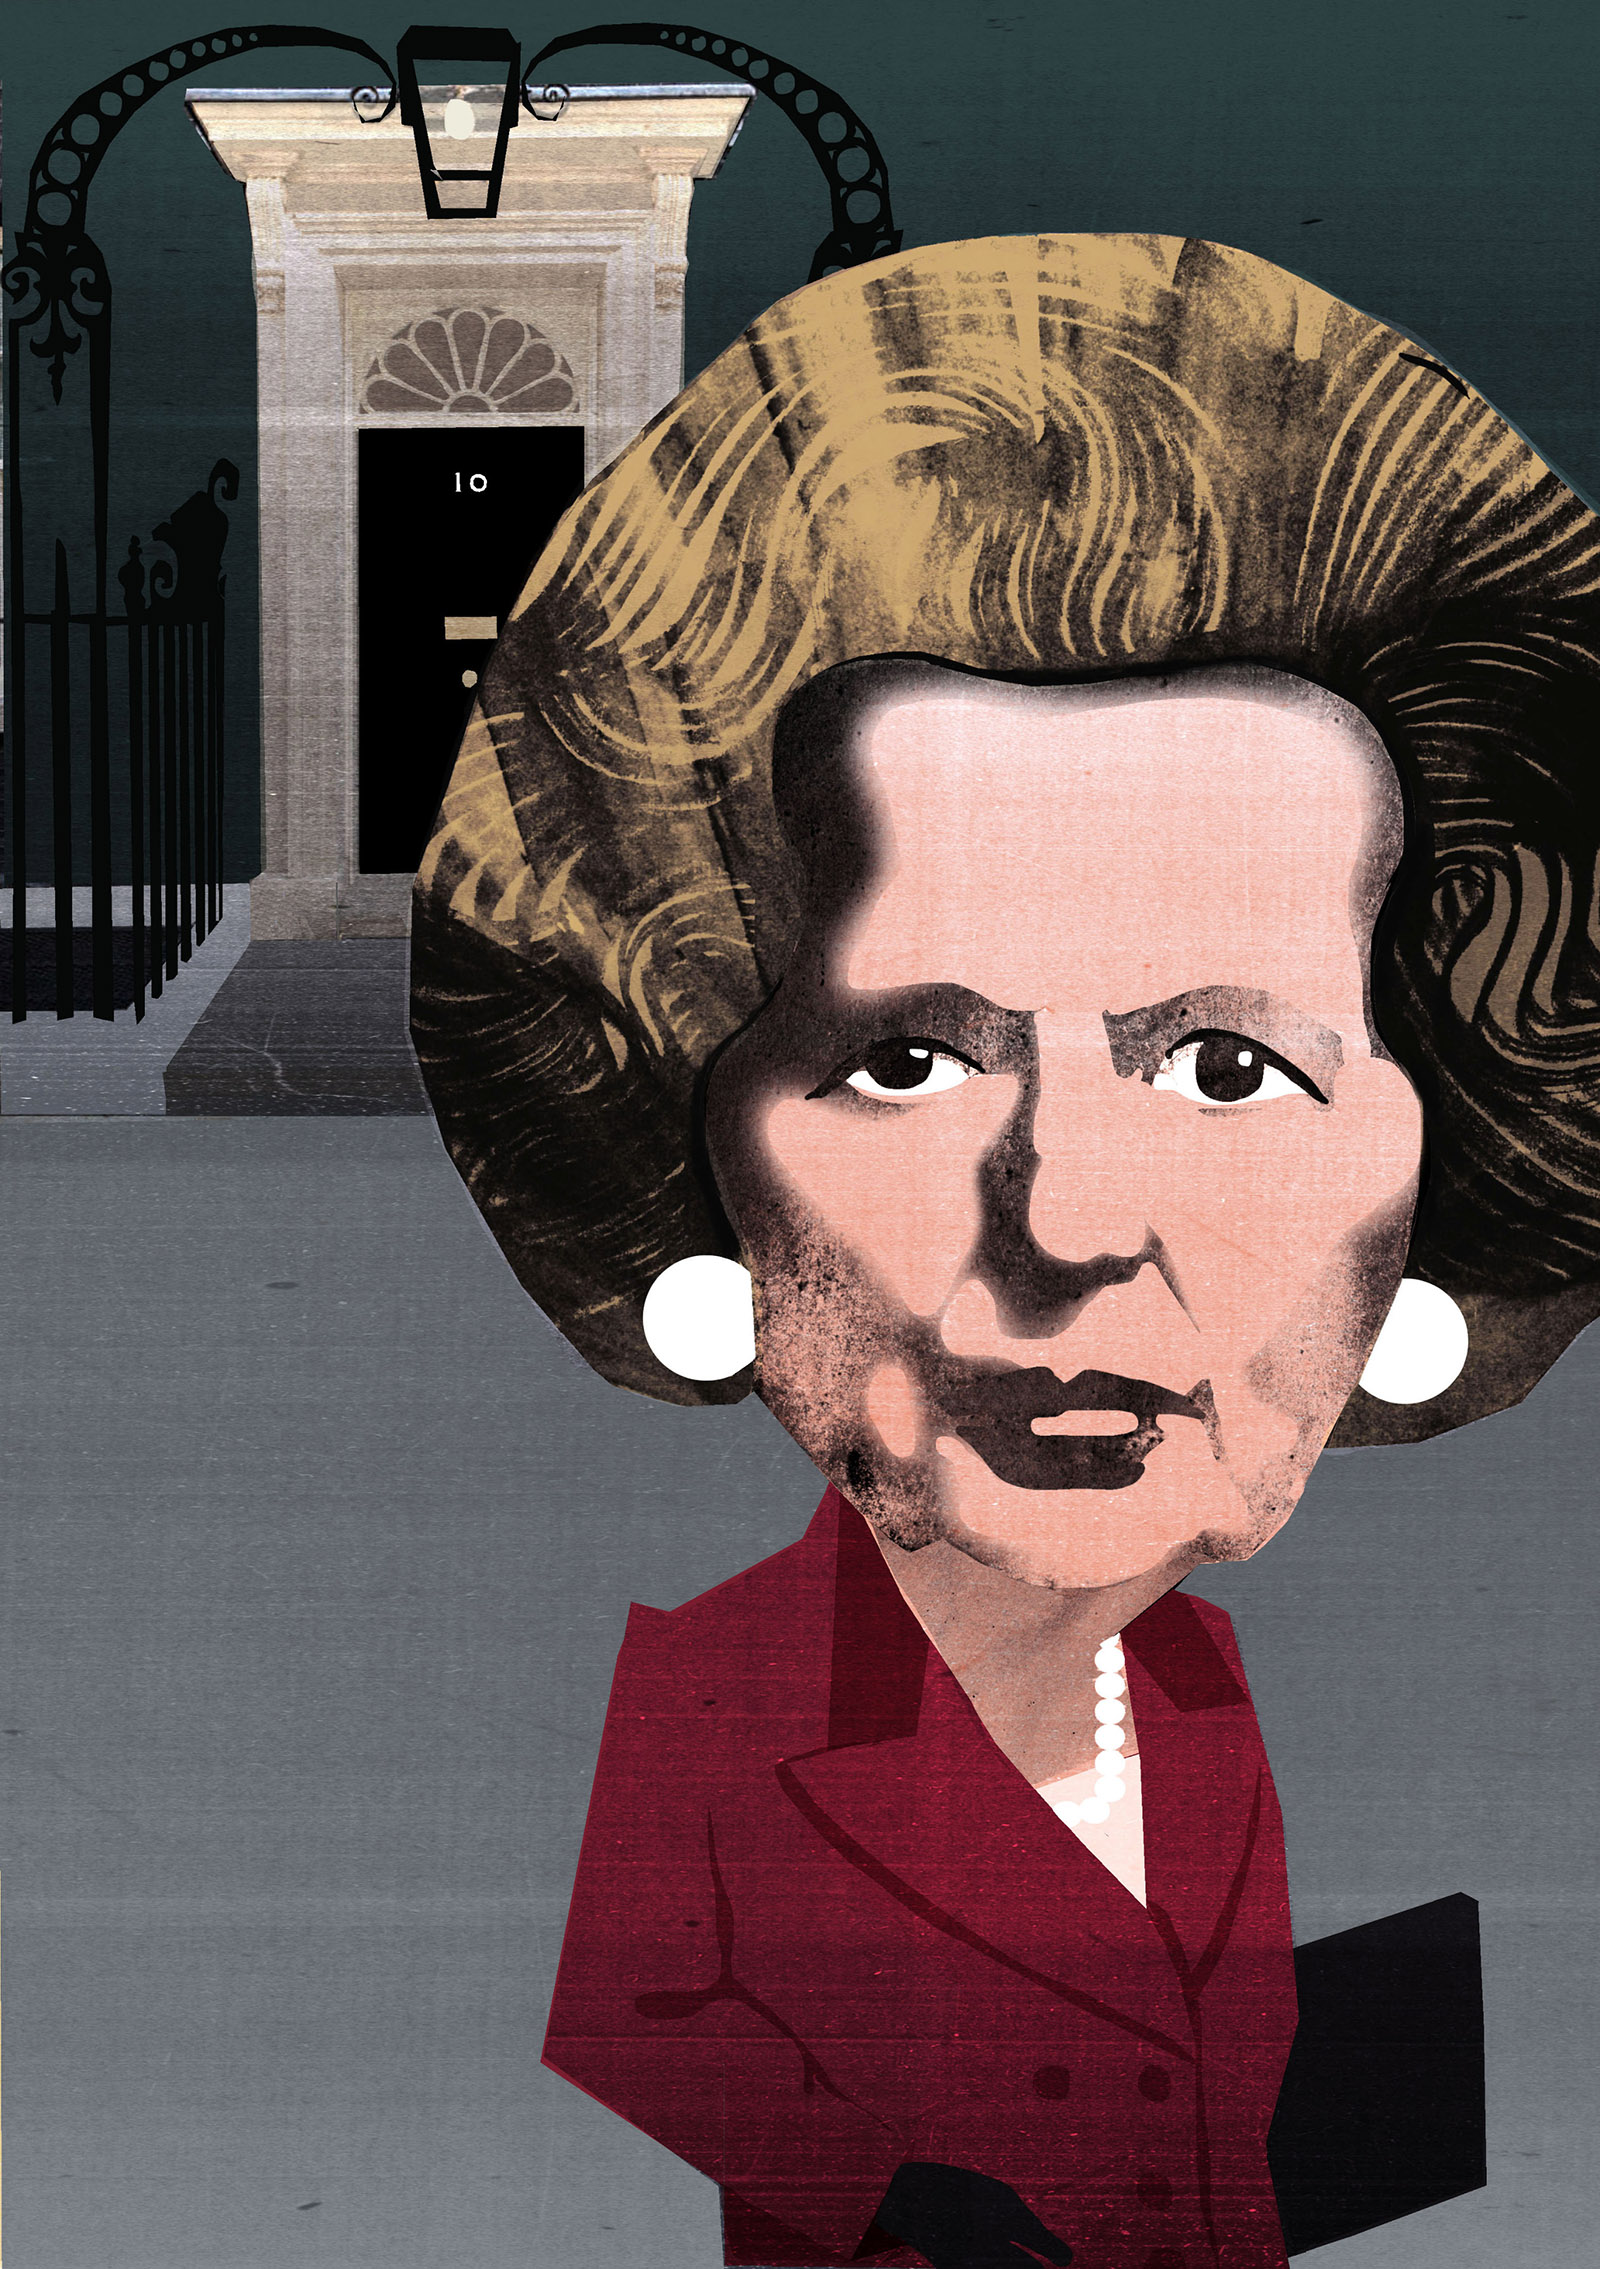 Margaret Thatcher by Ellie Foreman-Peck